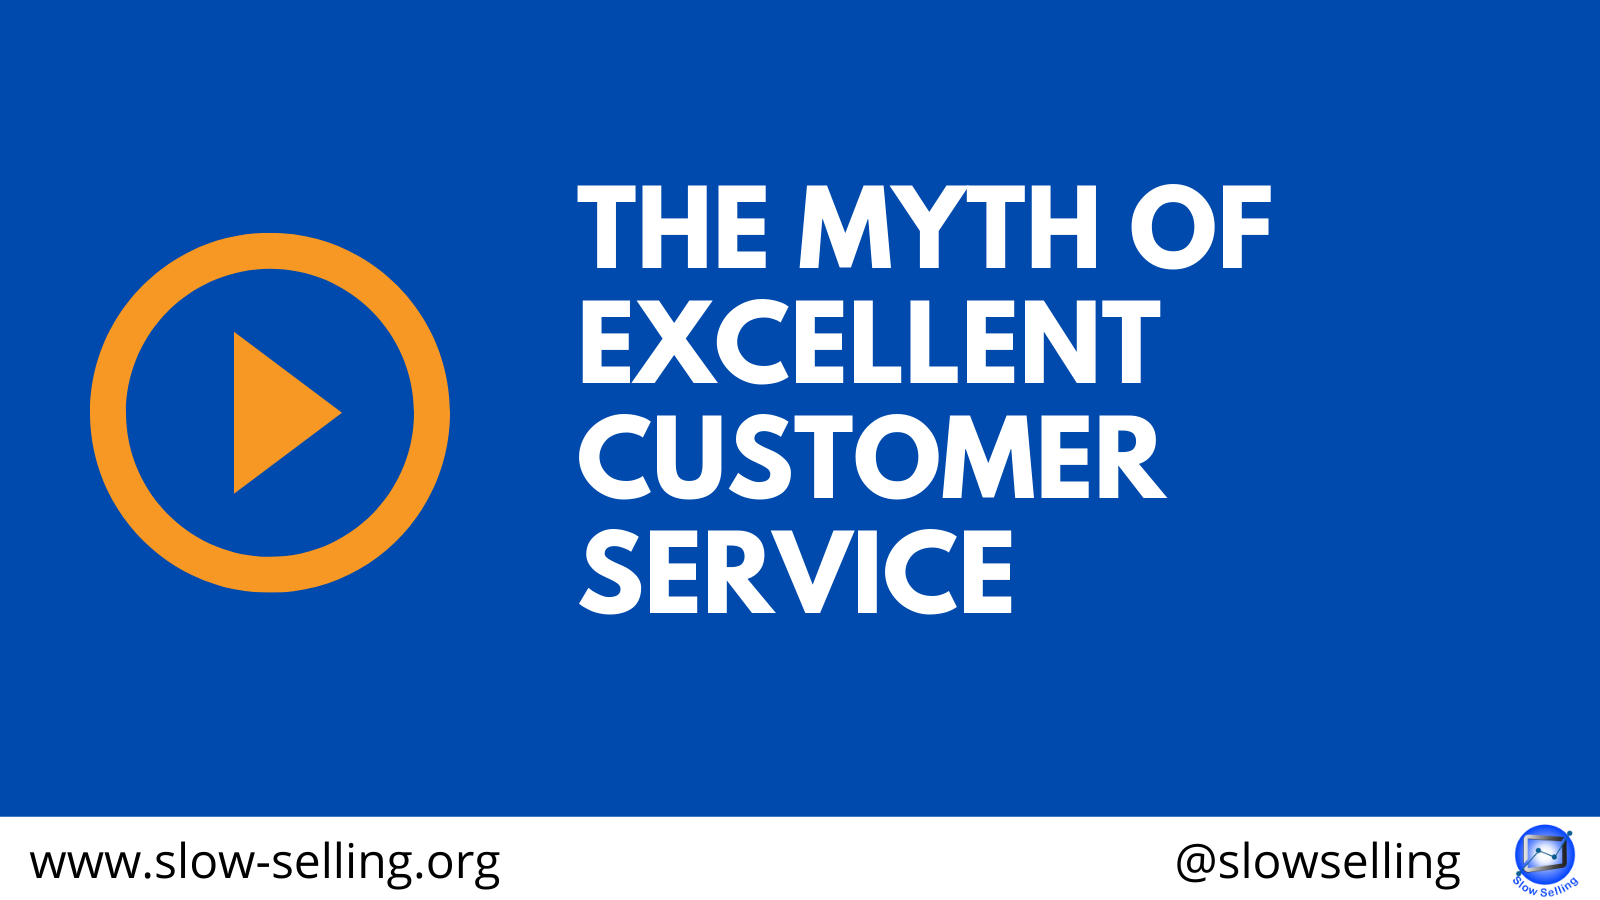 THE MYTH OF EXCELLENT CUSTOMER SERVICE